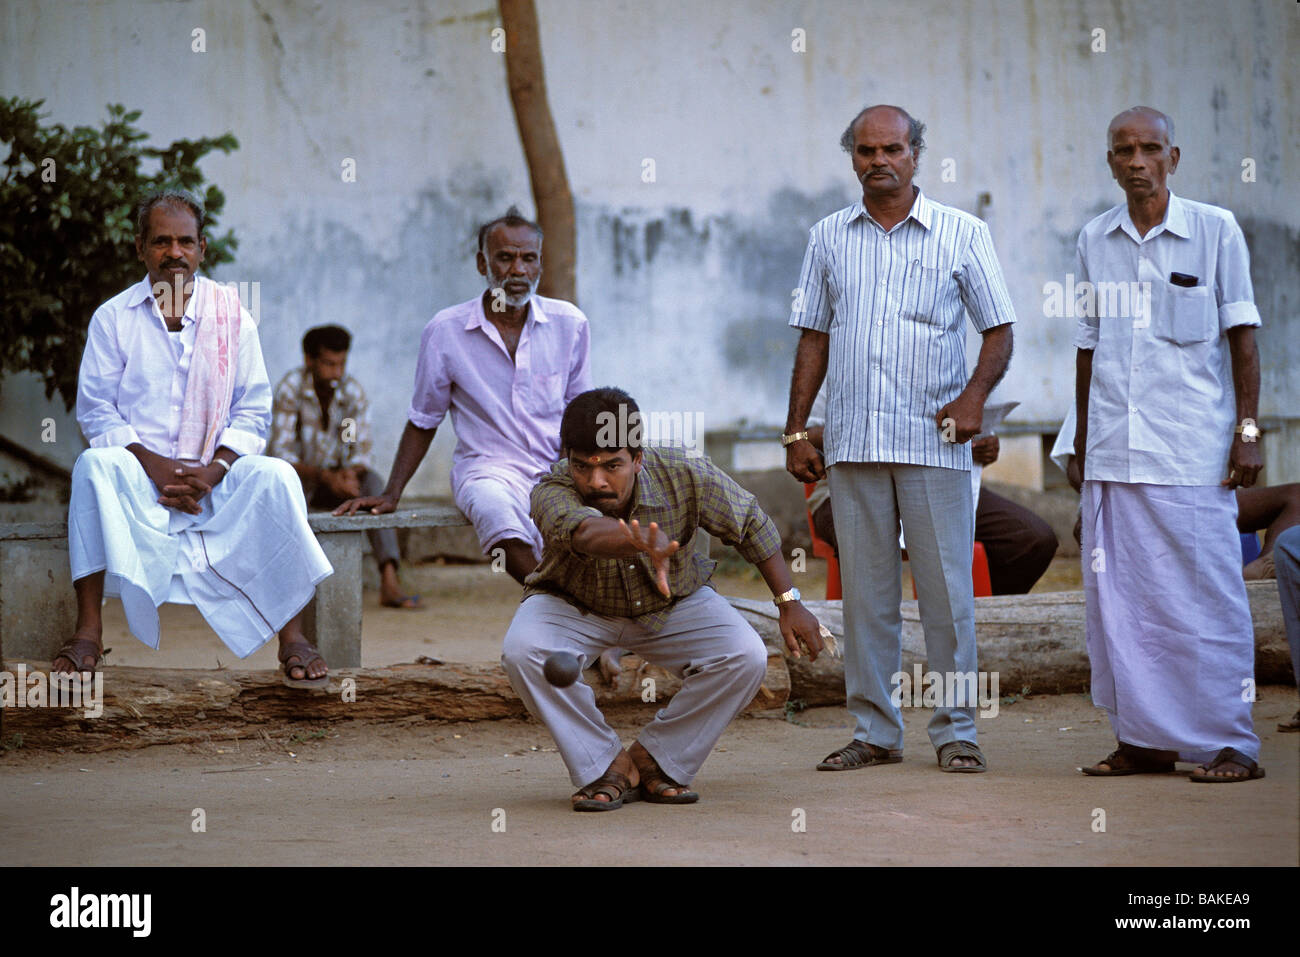 India, Pondicherry Territory, Pondicherry, French consulate, Petanque game Stock Photo